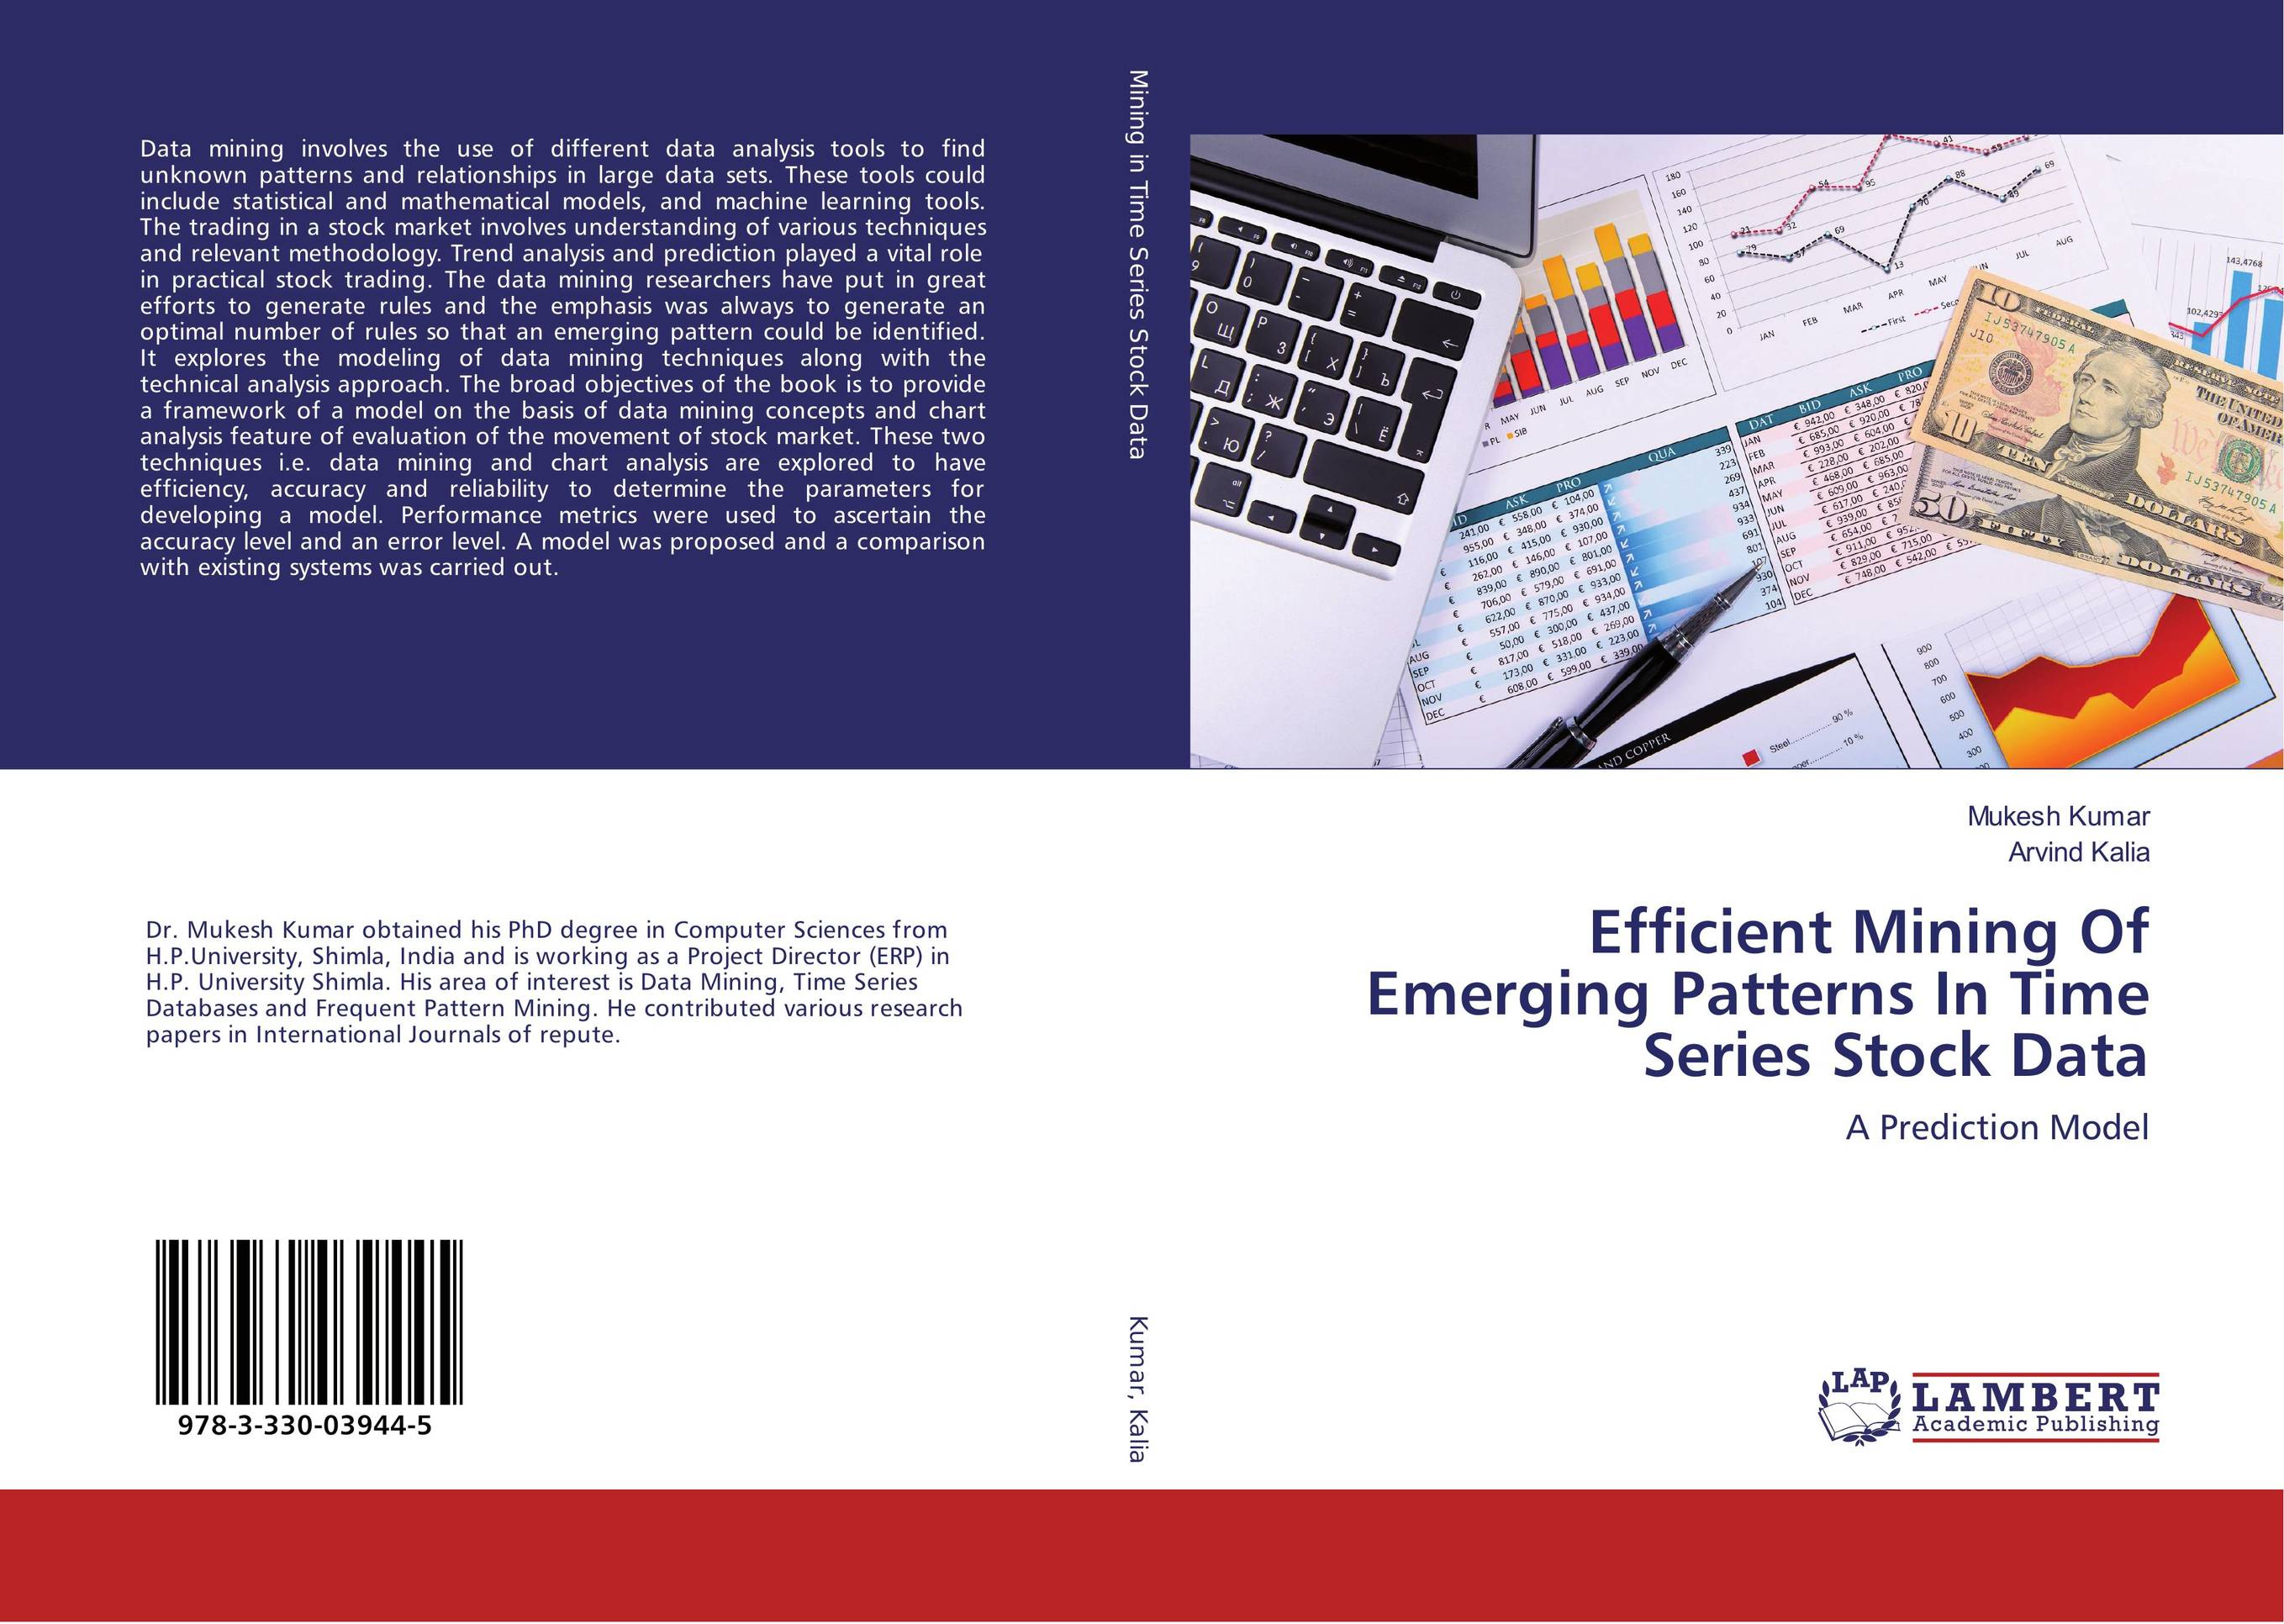 9783330039445 Efficient Mining Of Emerging Patterns In Time Series Stock Data